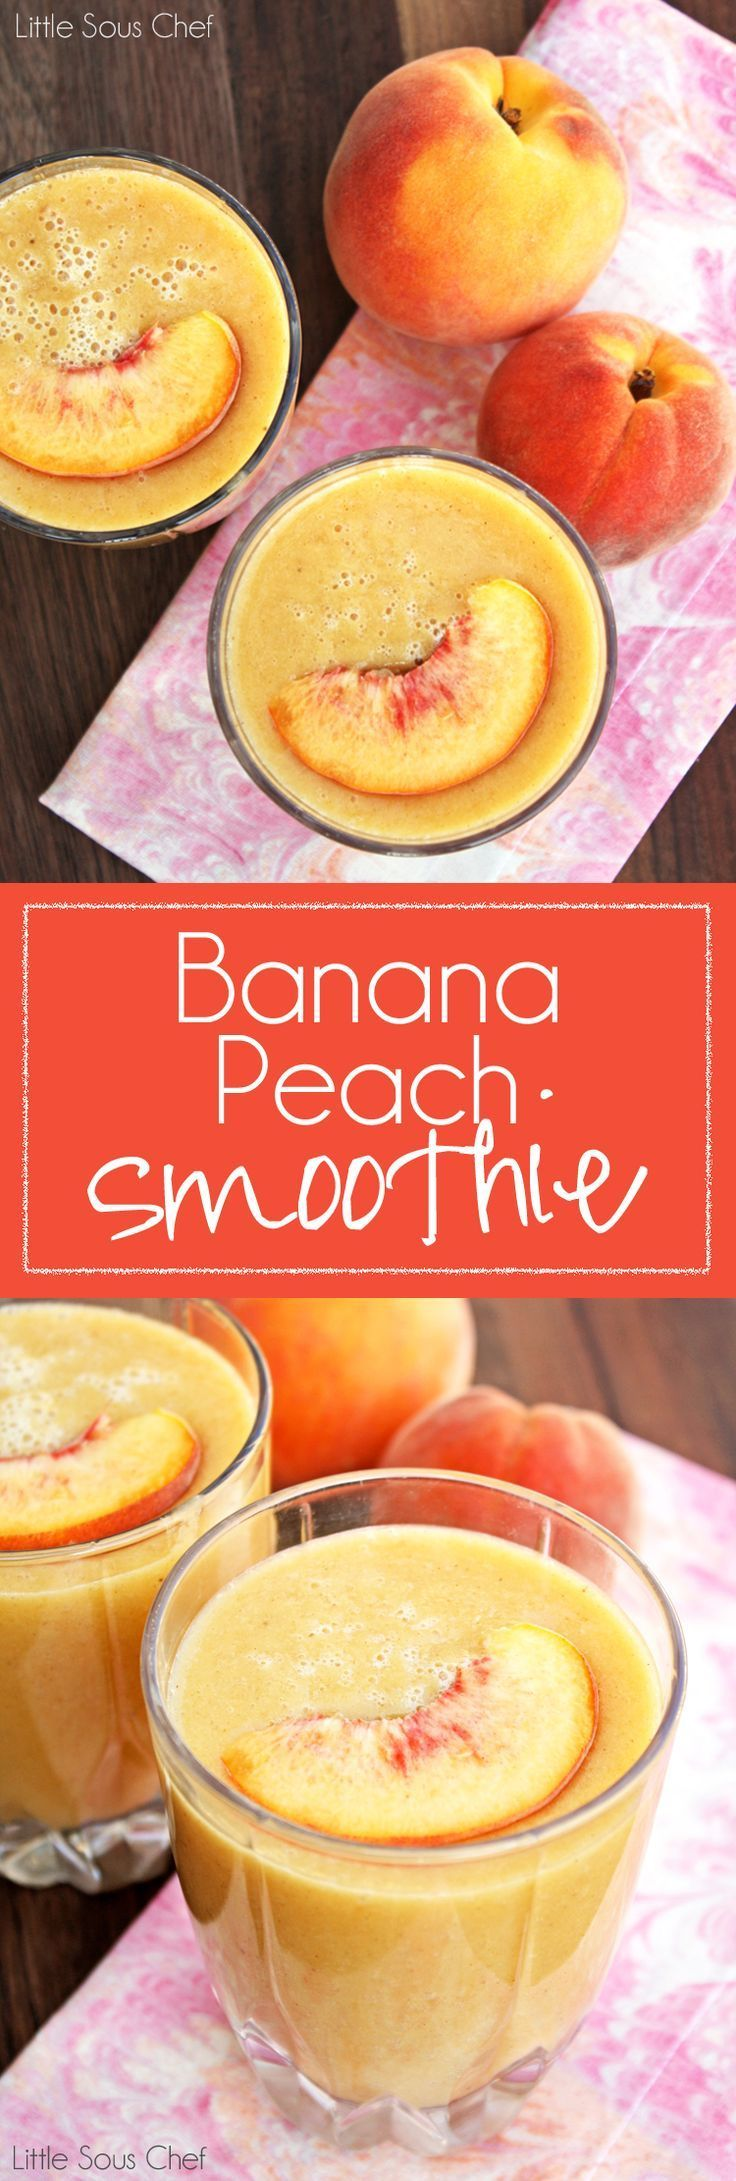 Easy Banana Peach Smoothie // Upgrade your skincare routine today for healthier & amazing looking skin, using our discount code 'Pinterest10' at herbavana.com